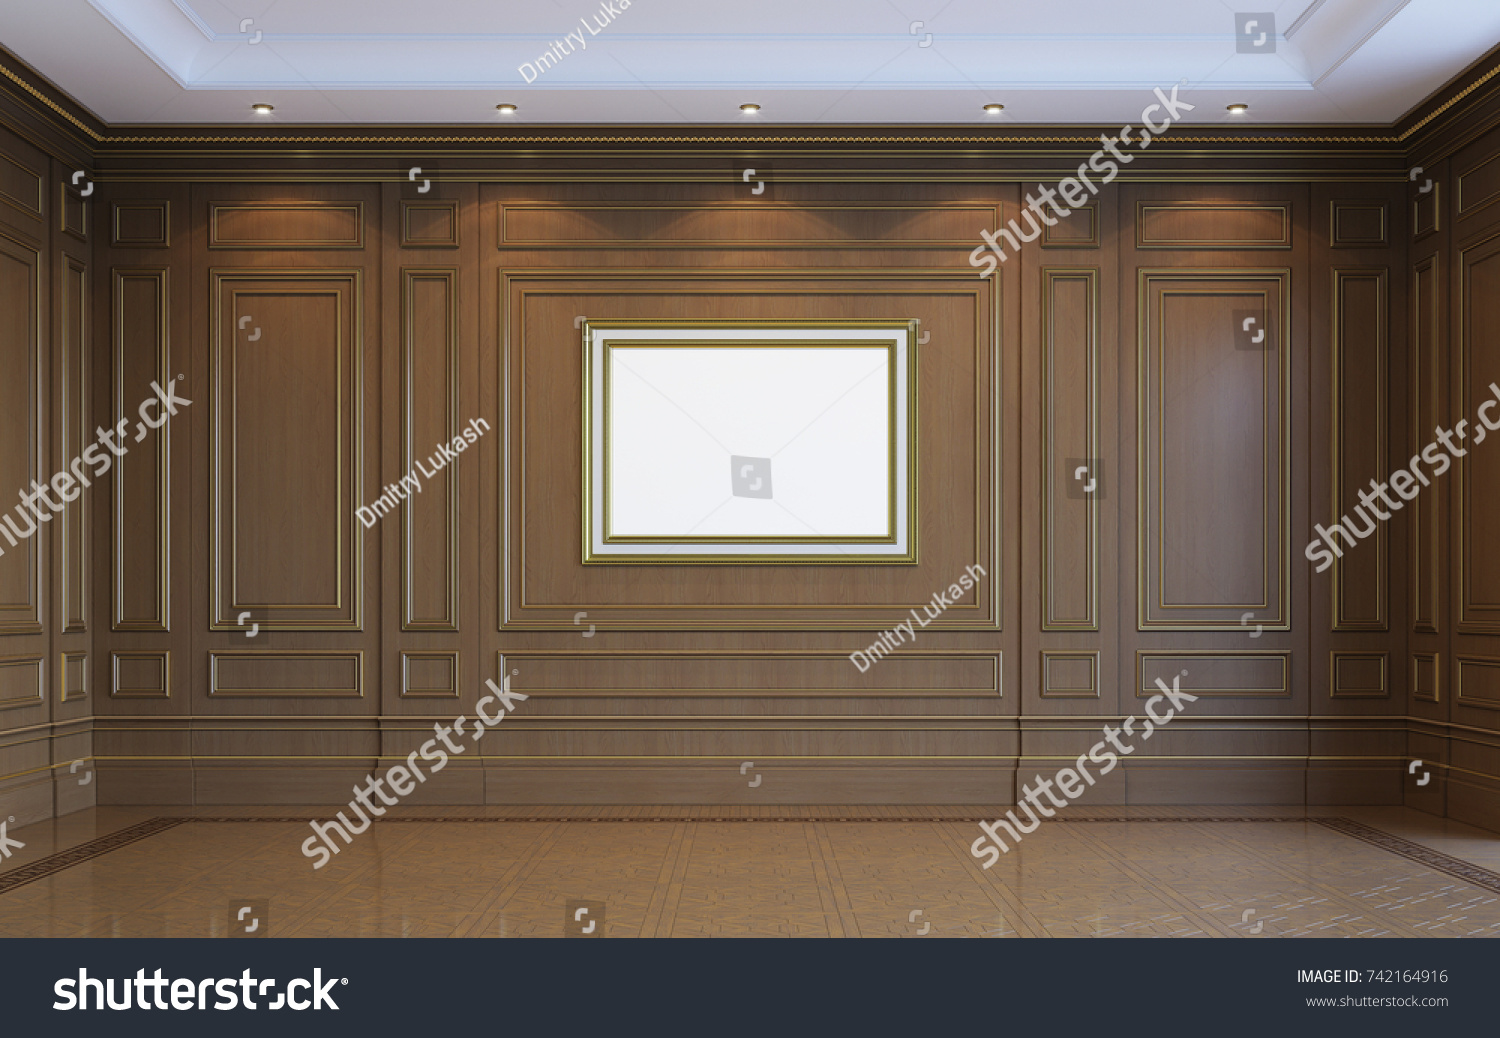 Classic Interior Wood Paneling By Art Stock Illustration - Royalty ...